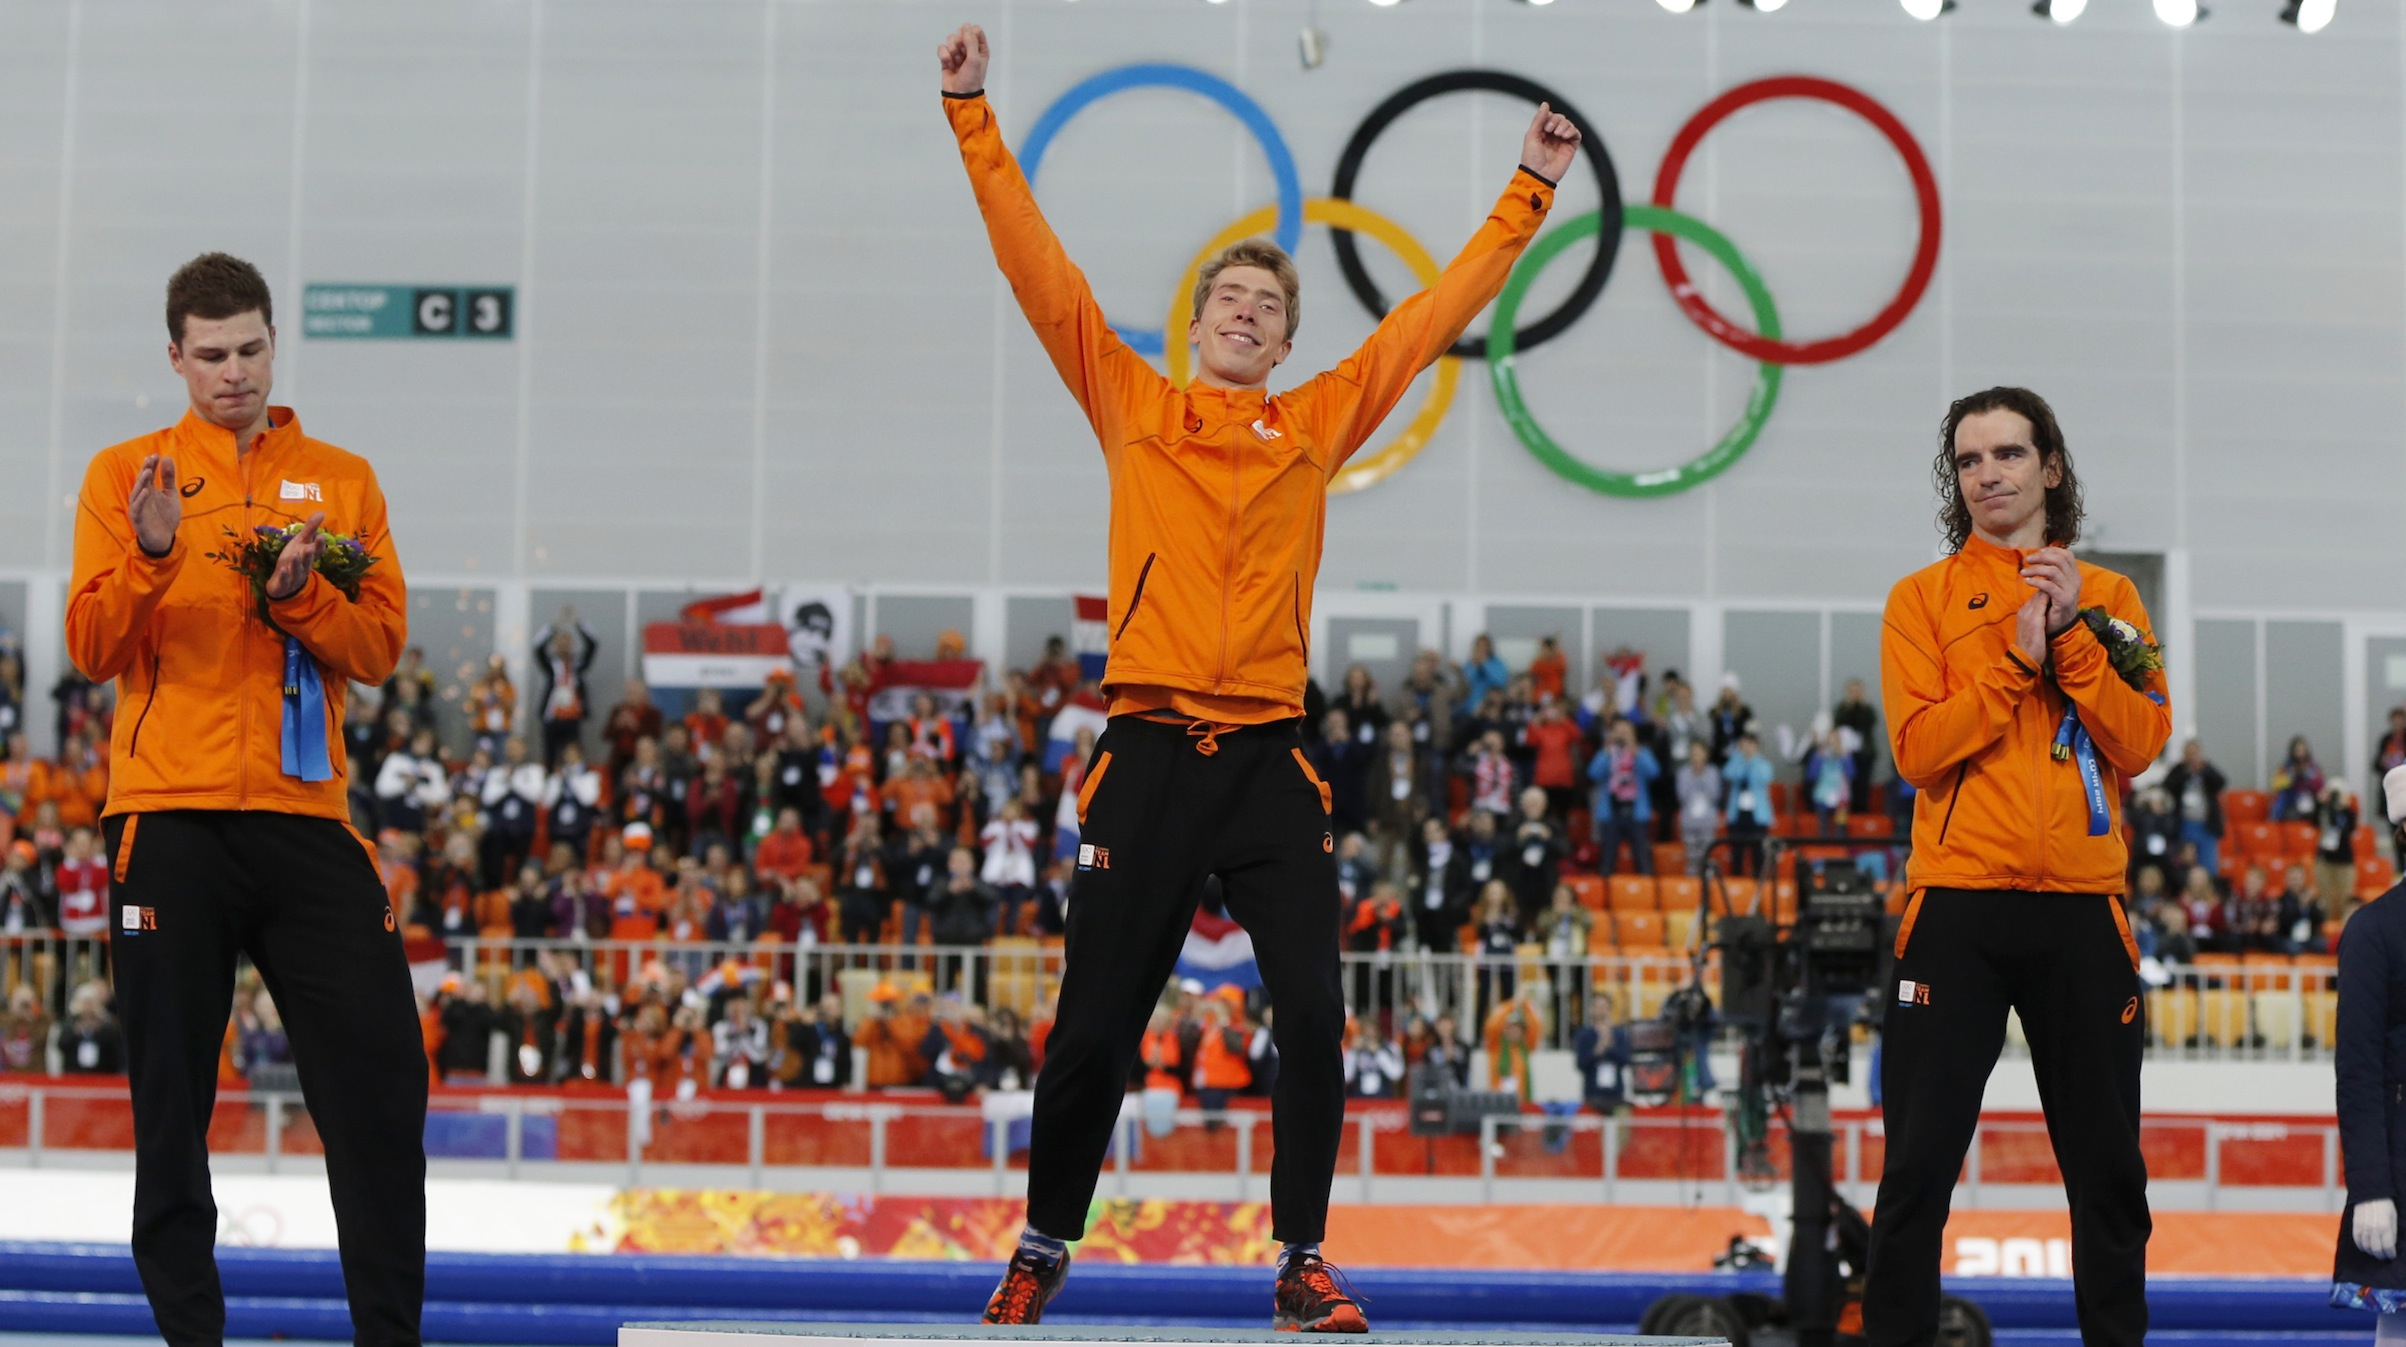 Second-placed Sven Kramer (L) of the Netherlands and his compatriot third-placed Bob de Jong (R) applaud winner Jorrit Bergsma of the Netherlands, during the flower ceremony for the men's 10,000 metres speed skating race at the Adler Arena in the Sochi 2014 Winter Olympic Games February 18, 2014. It was a fourth clean sweep of the speed skating medals for the Dutch at the Sochi Games.   REUTERS/Phil Noble (RUSSIA  - Tags: OLYMPICS SPORT SPEED SKATING TPX IMAGES OF THE DAY)   - RTX1920C